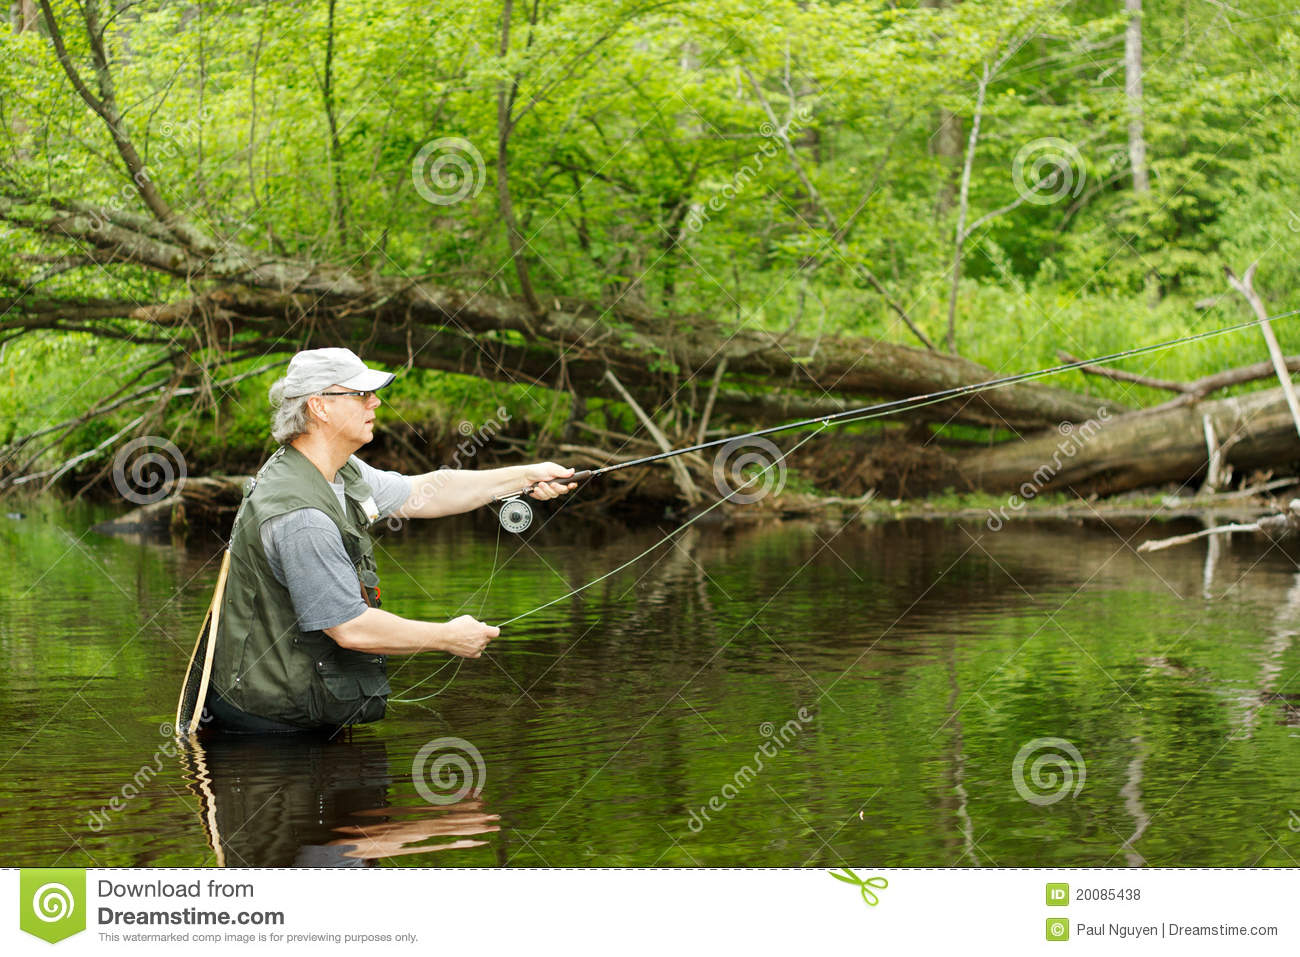 Fly fishing royalty free stock photos image 20085438 for Fishing times free